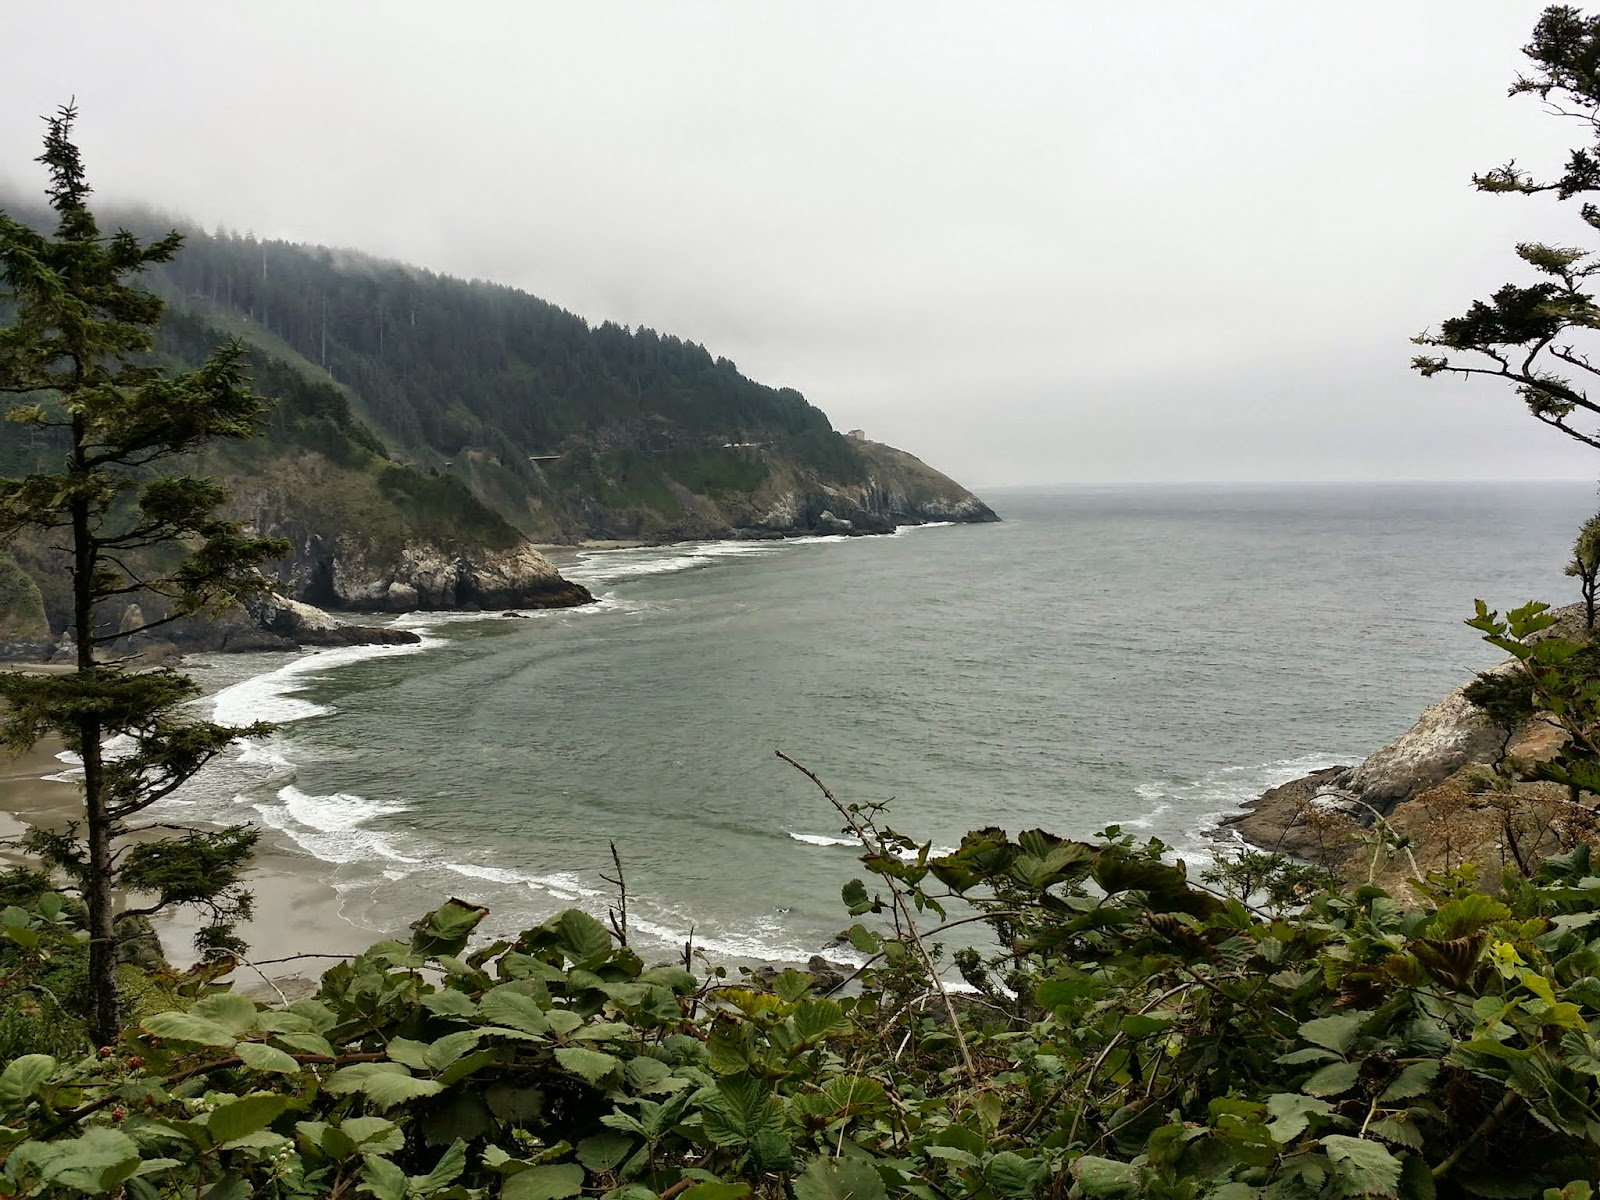 view from the trail to Heceta Head Lighthouse